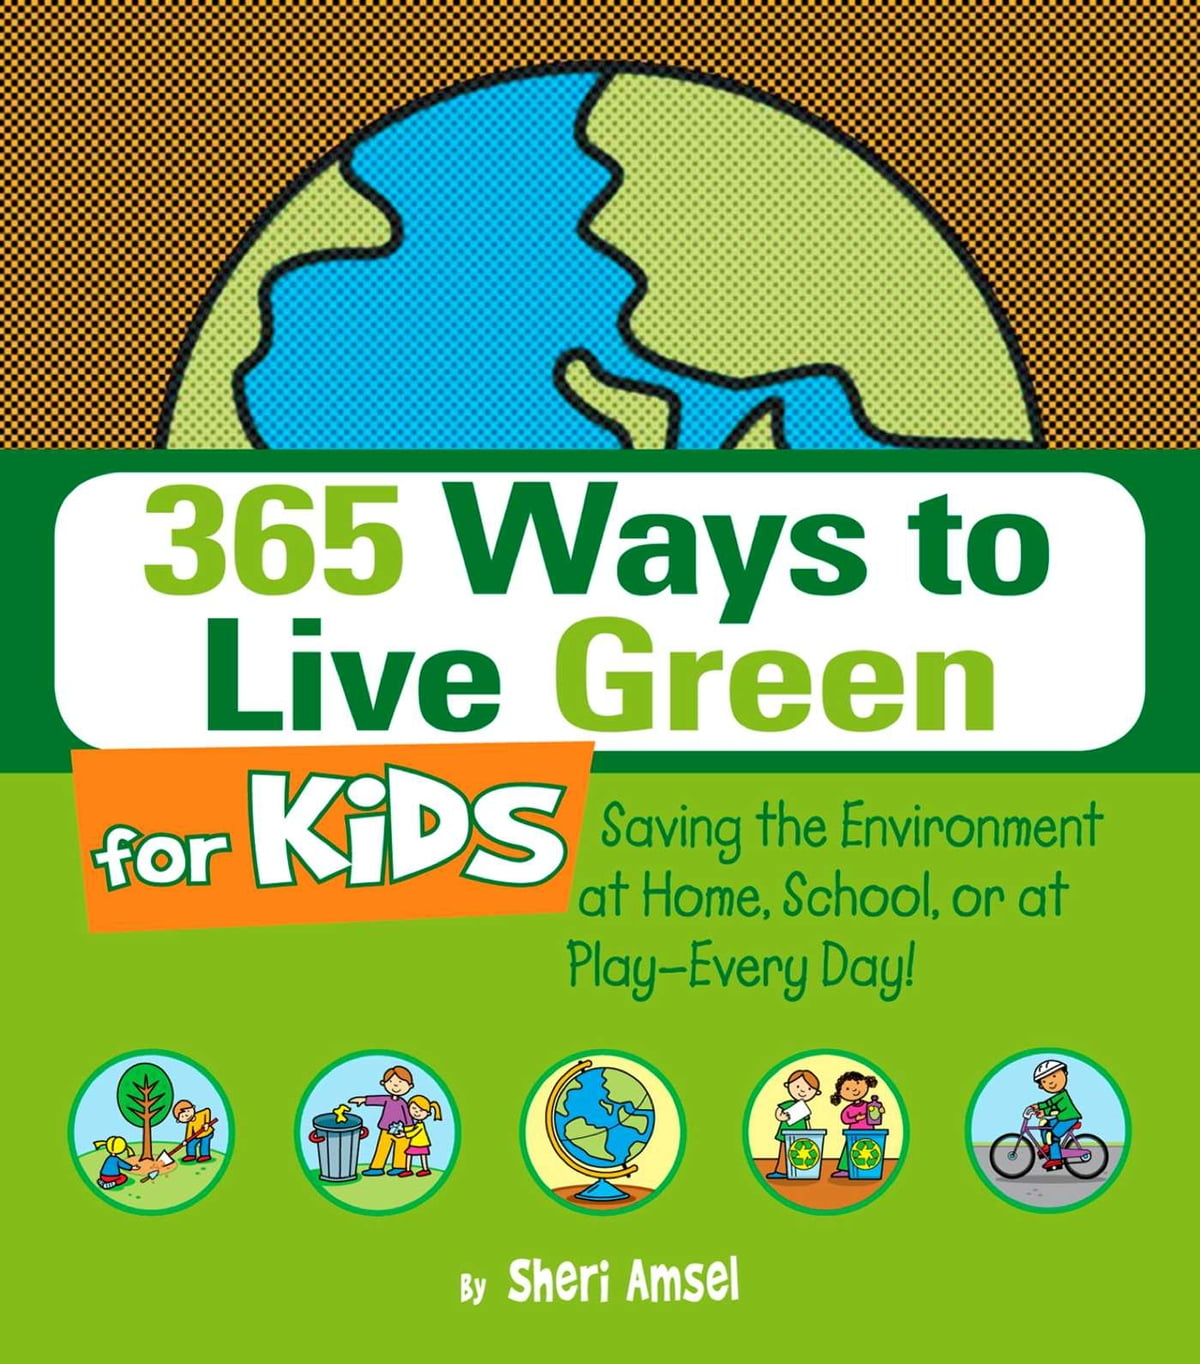 3 Ways to Live Green